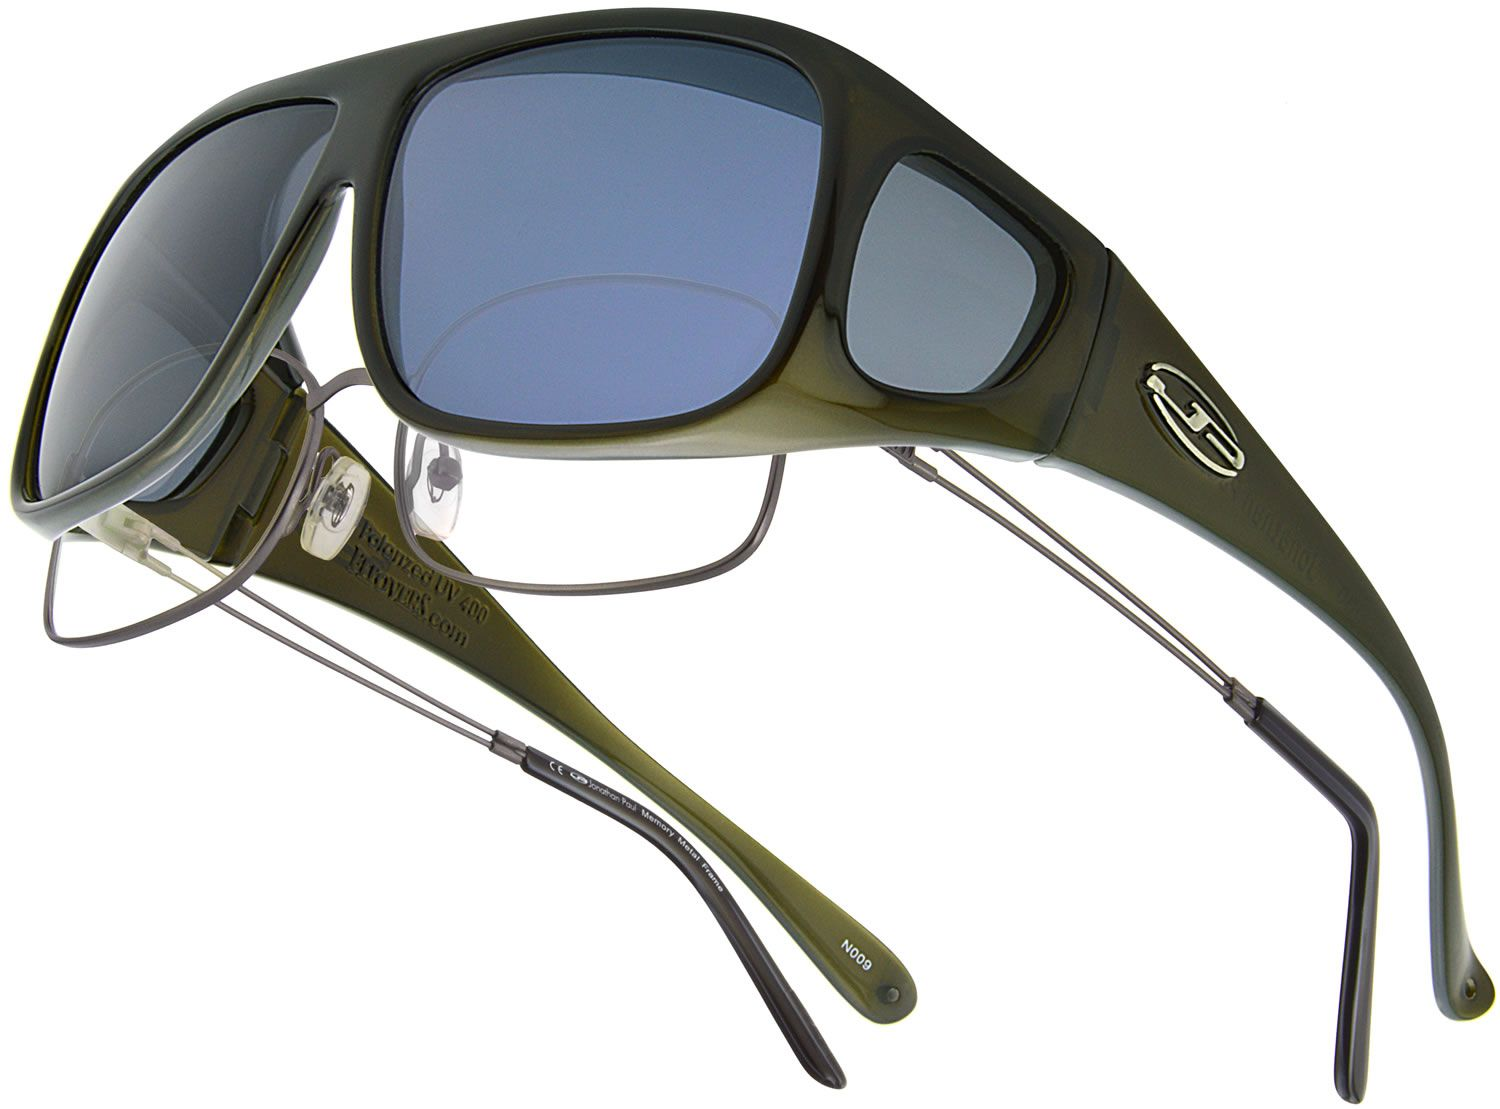 5802897ff9 Navigator Olive Crystal (Polarvue® Gray) - Fitover Sunglasses that are  specifically designed to